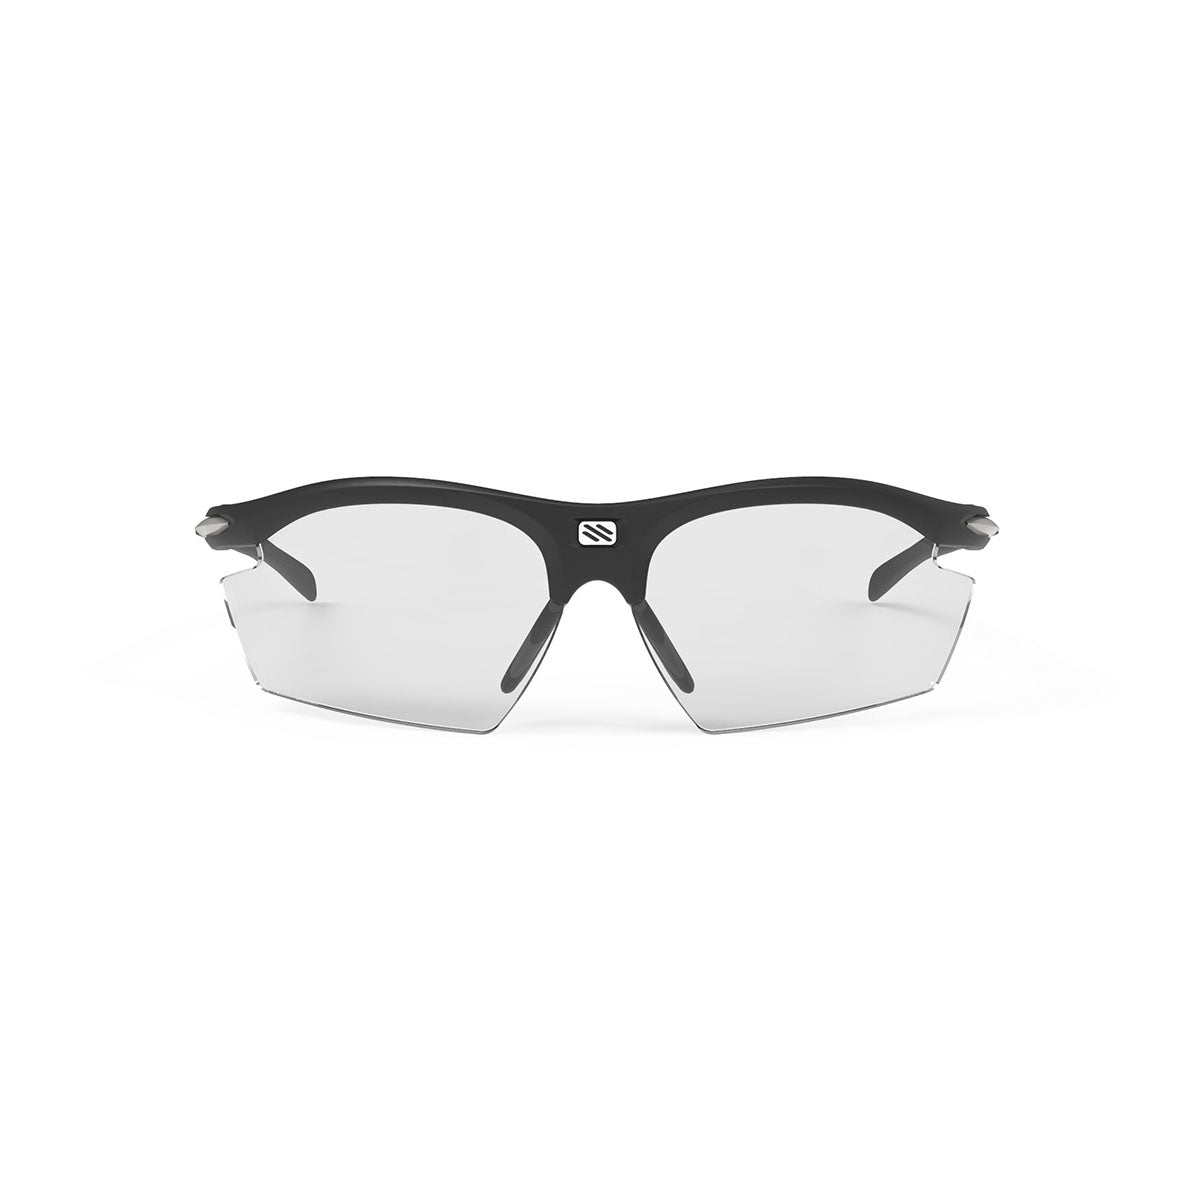 Rudy Project - Rydon - frame color: Matte Black - lens color: ImpactX-2 Photochromic Clear to Black - photo angle: Front View Variant Hover Image